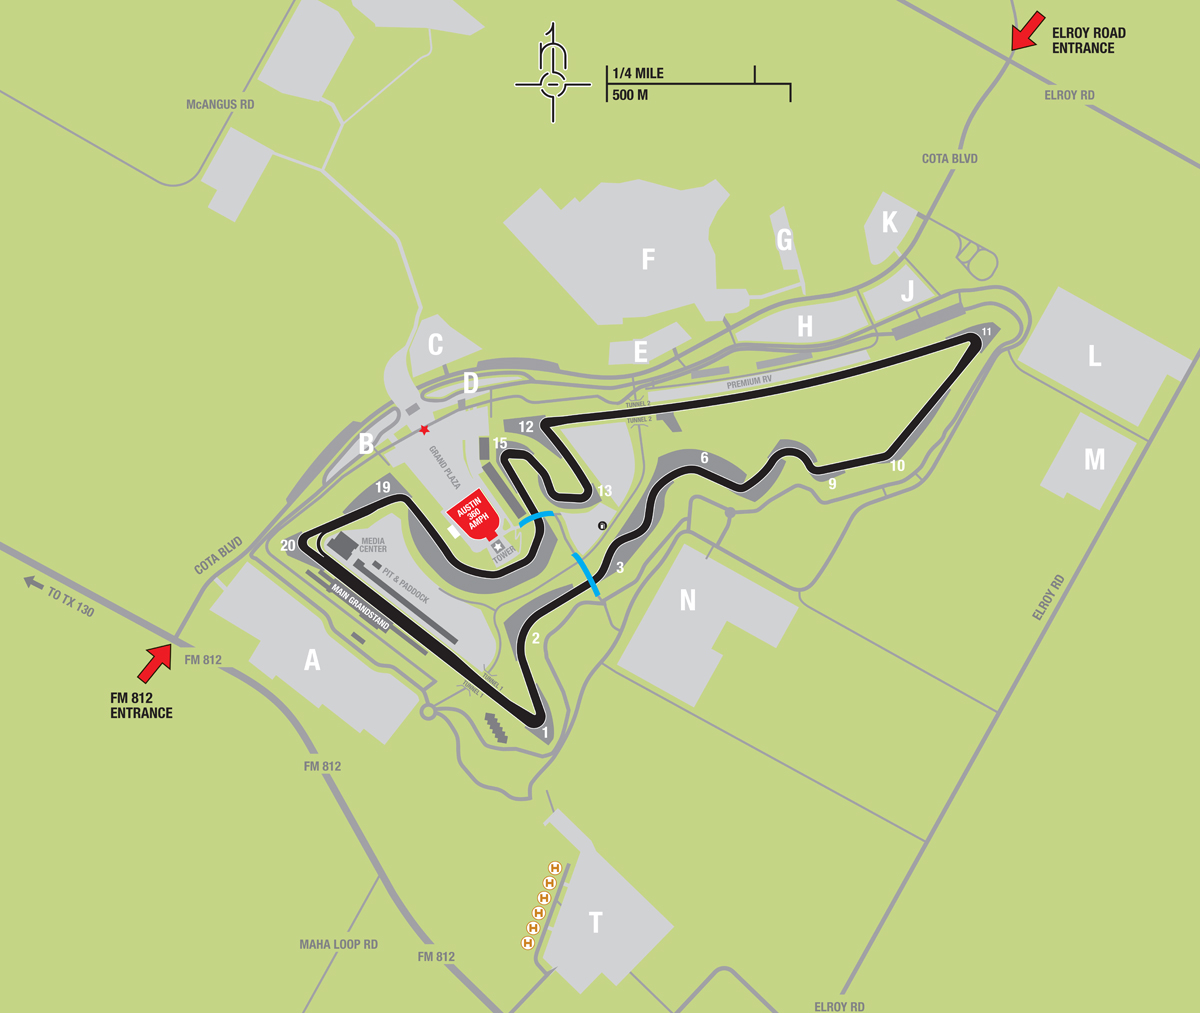 Maps - Circuit of the Americas